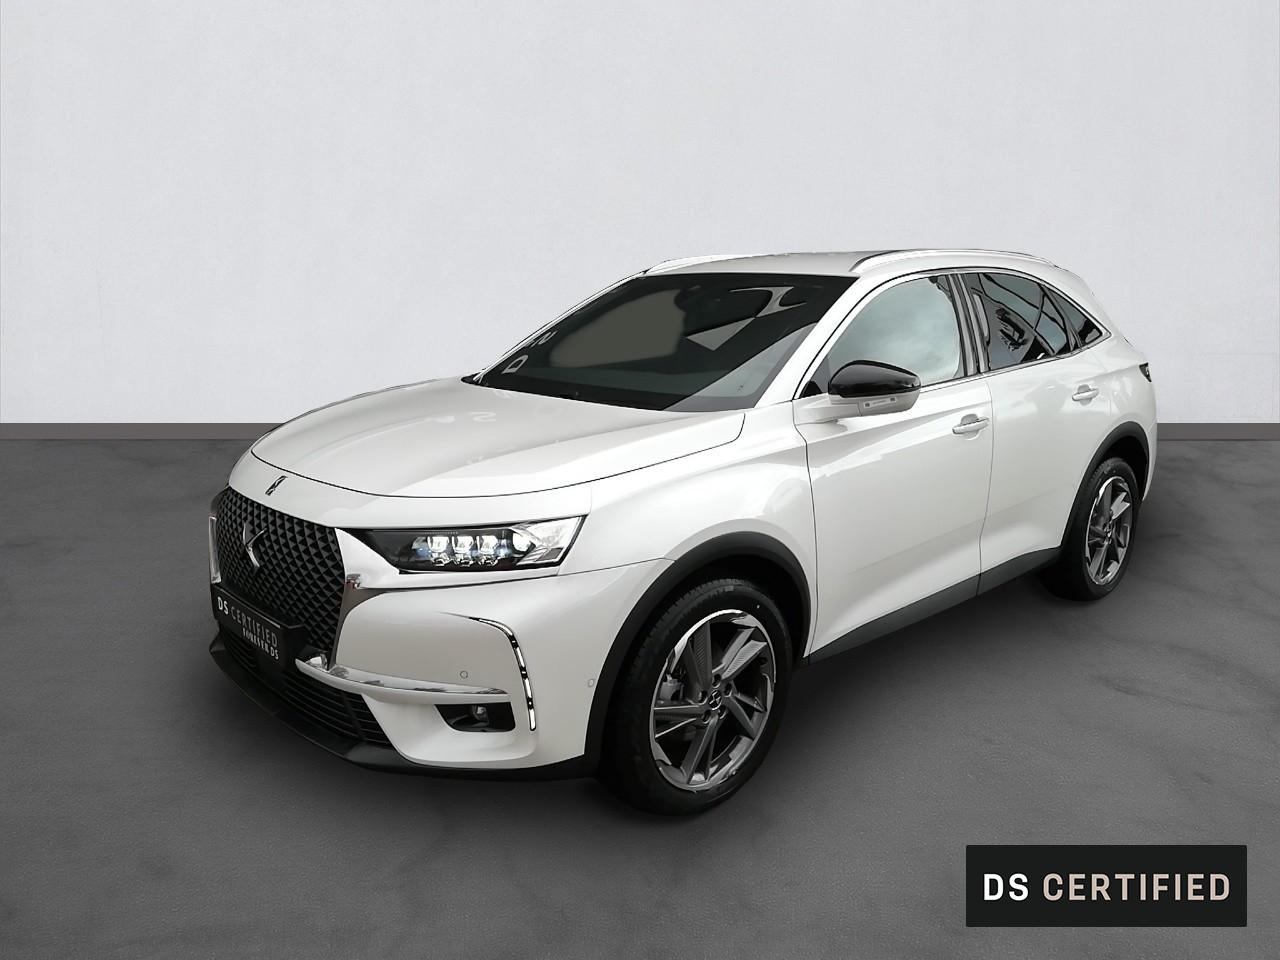 Ds DS 7 Crossback PureTech 130ch So Chic Automatique